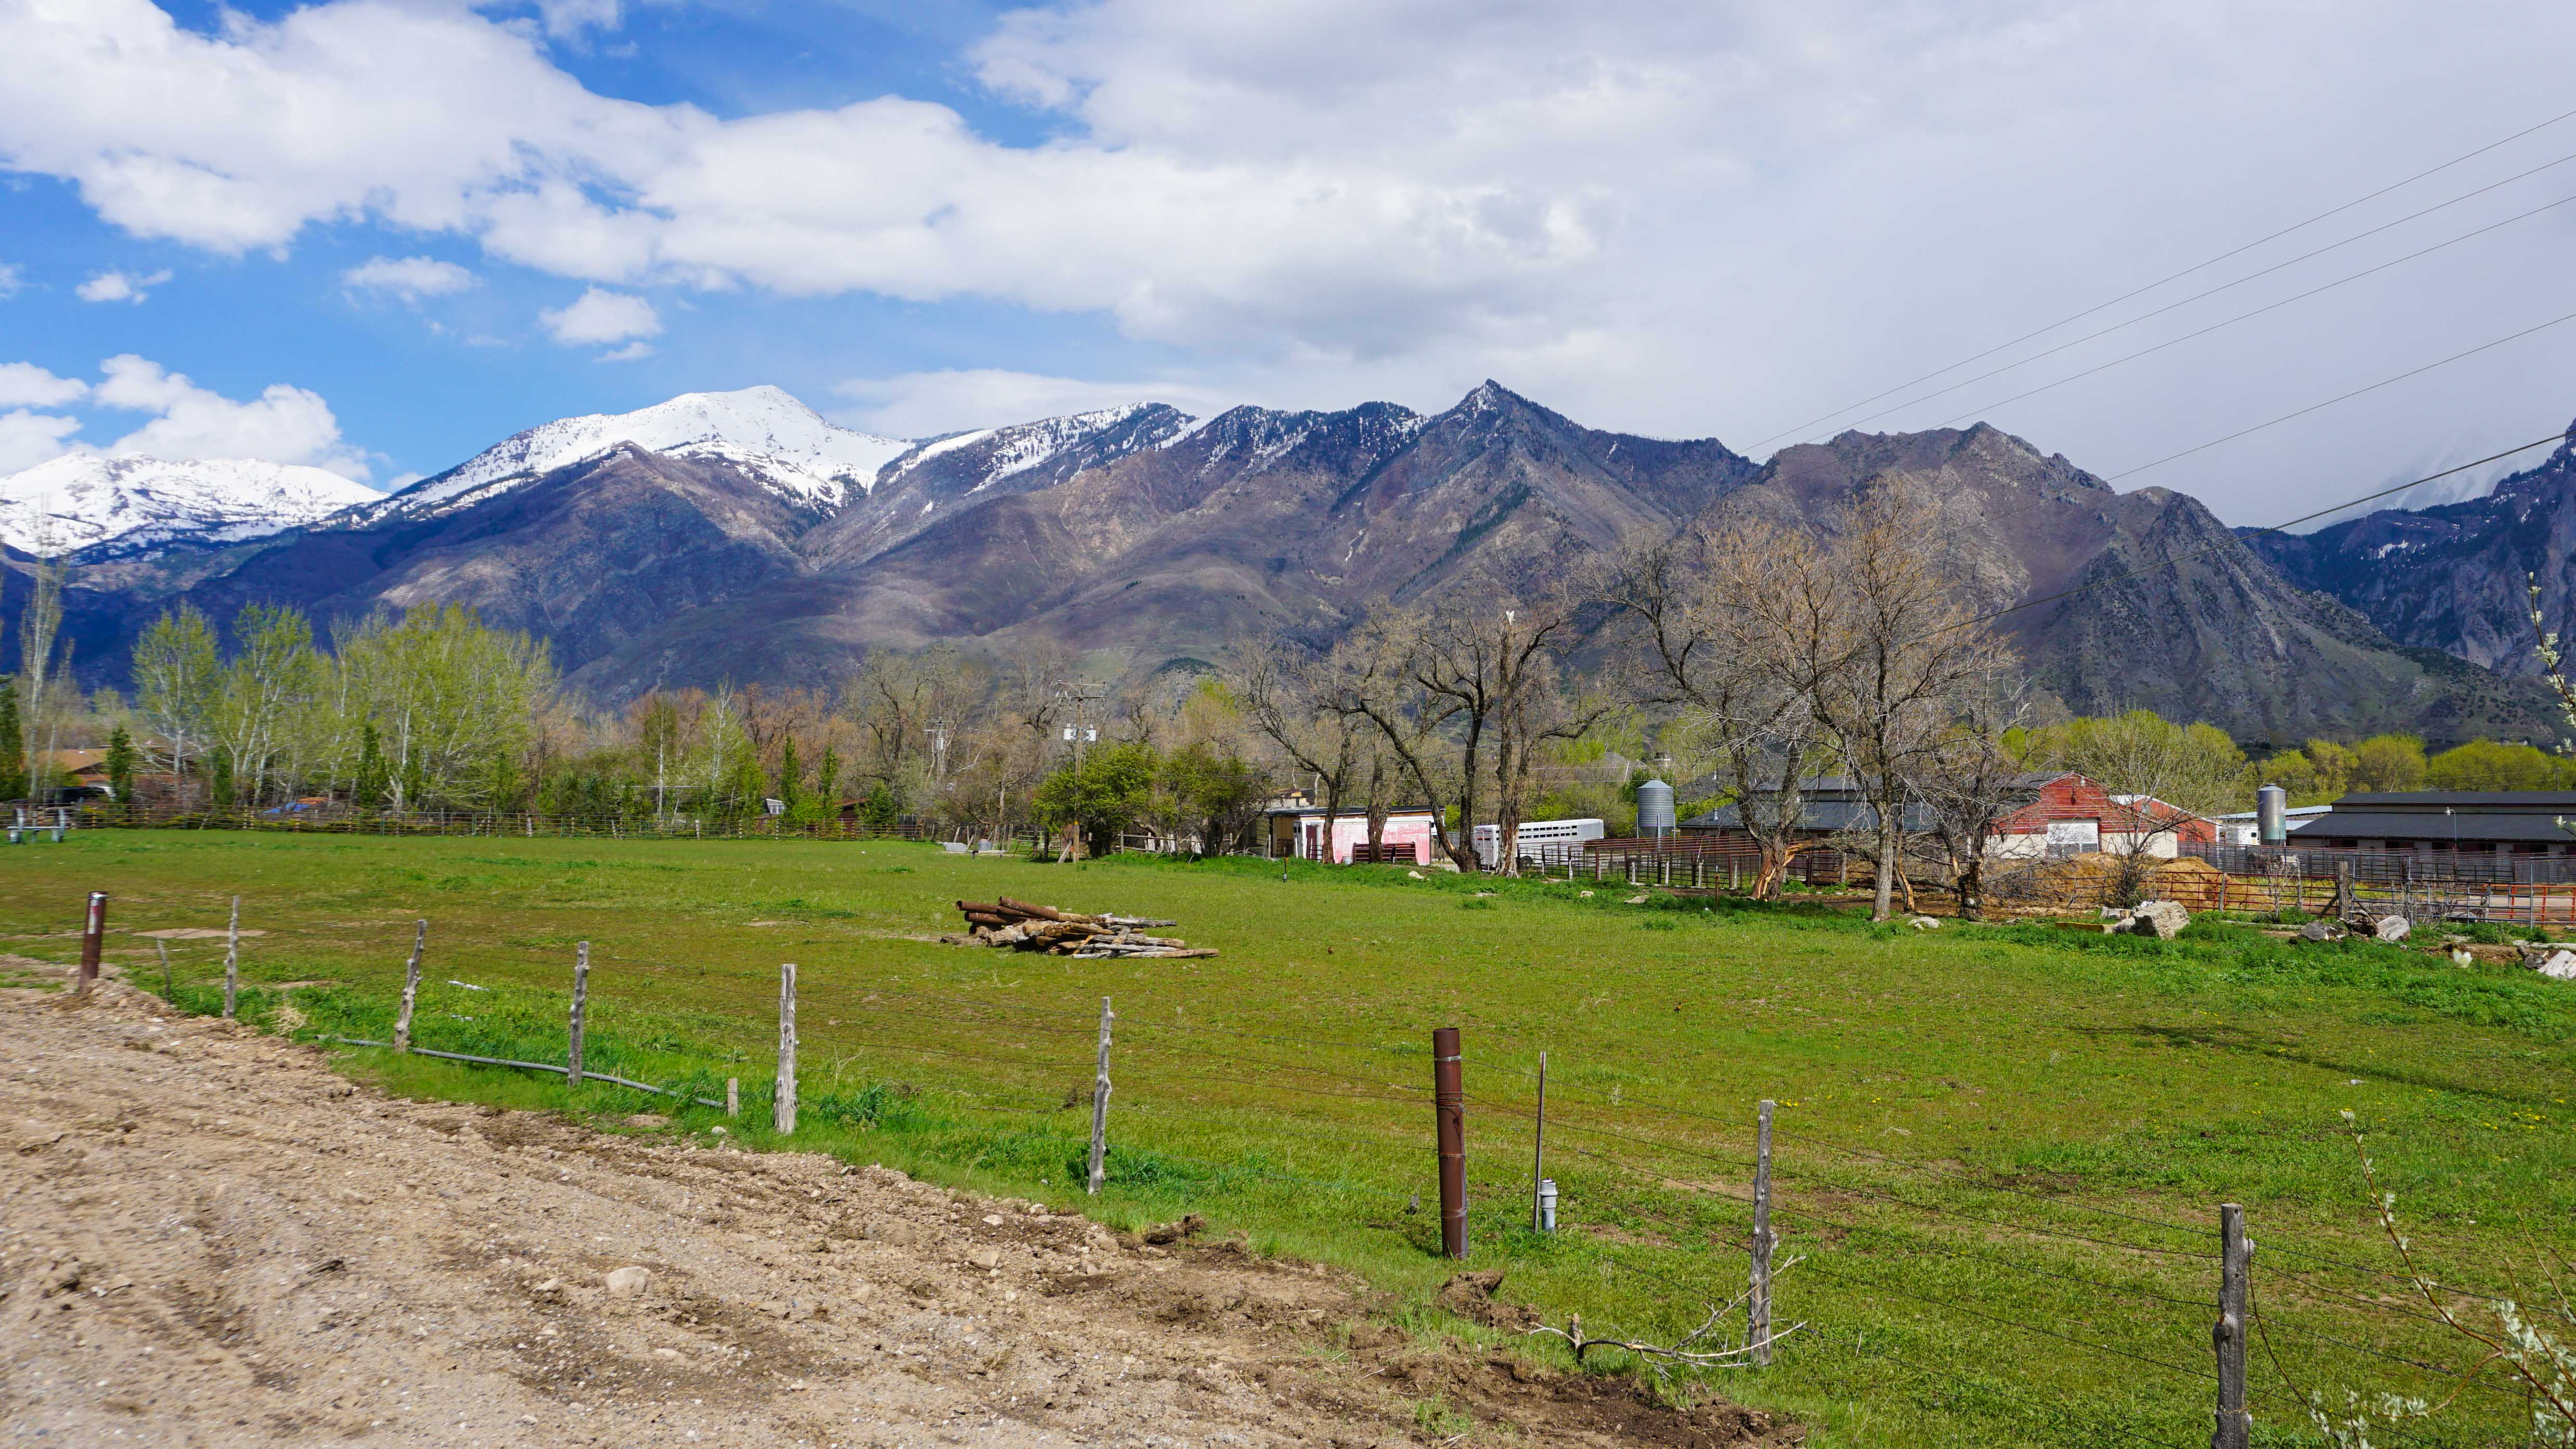 horse property for sale in pleasant grove ut equestrian